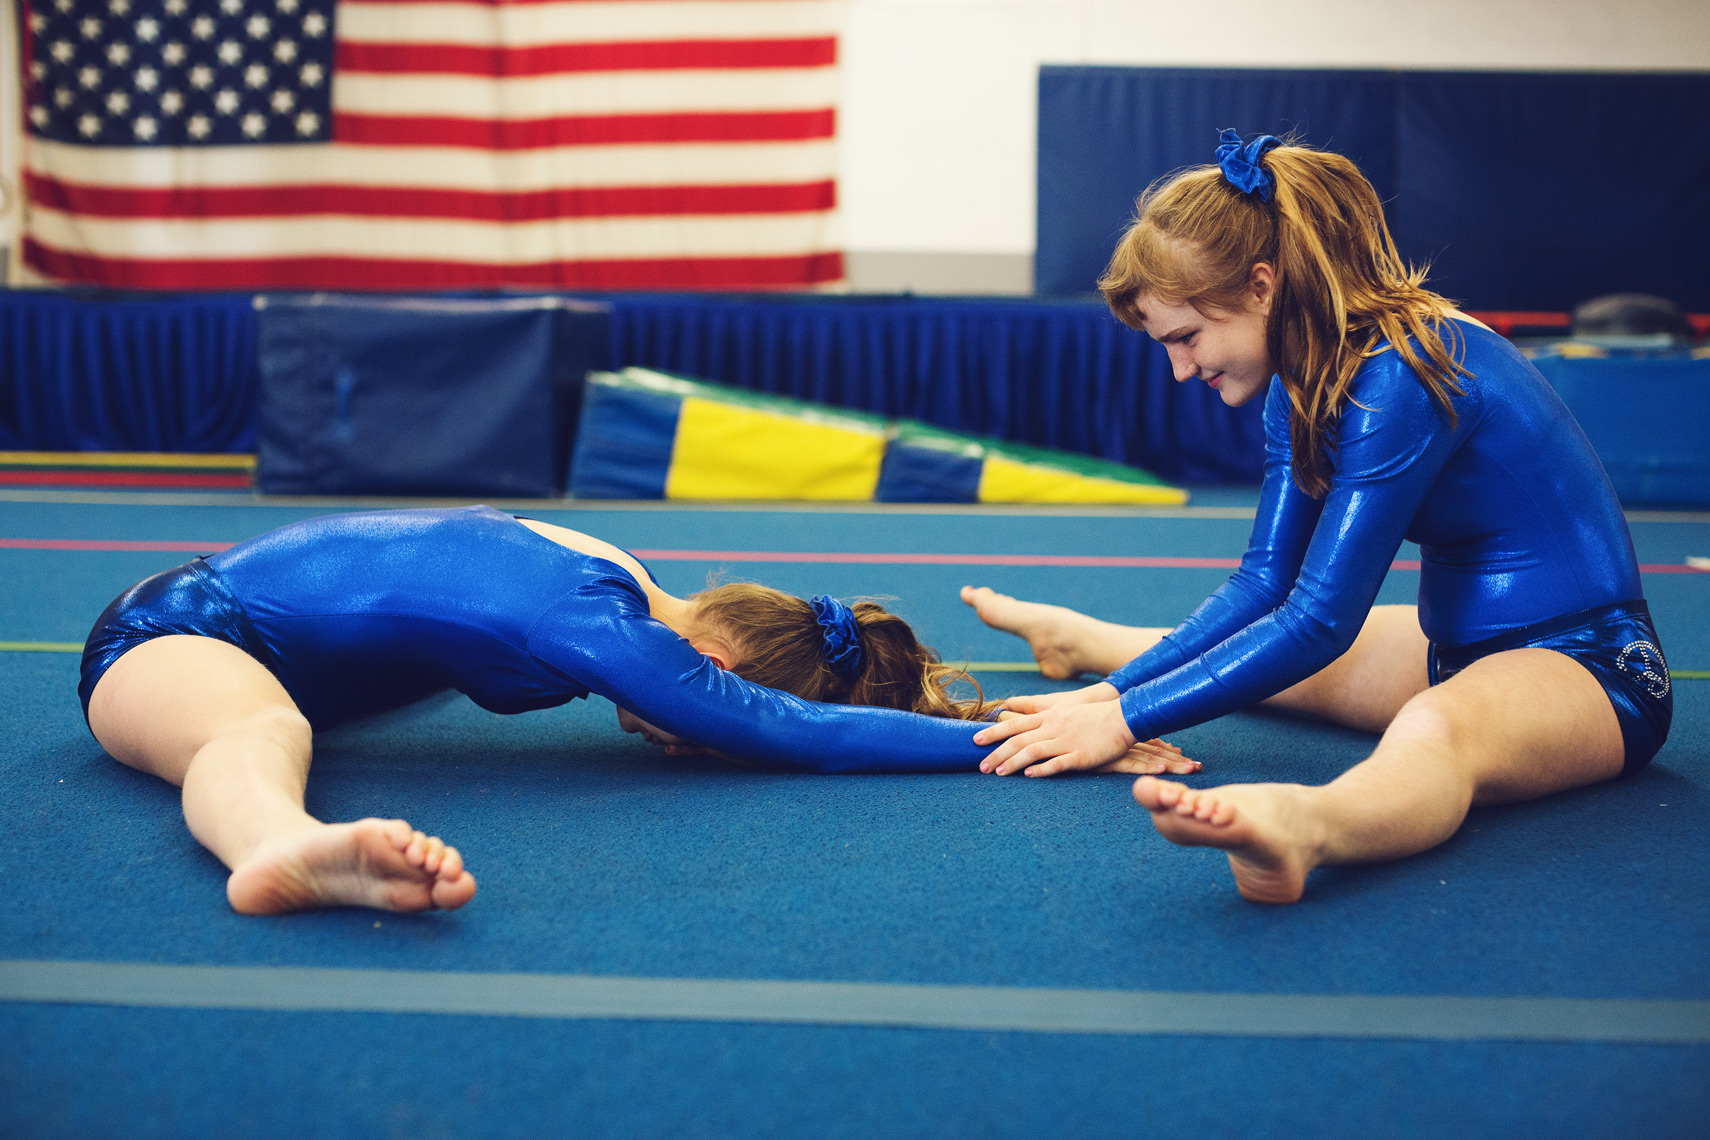 special olympics gymnast sisters stretching on blue mat, washington dc commercial photography